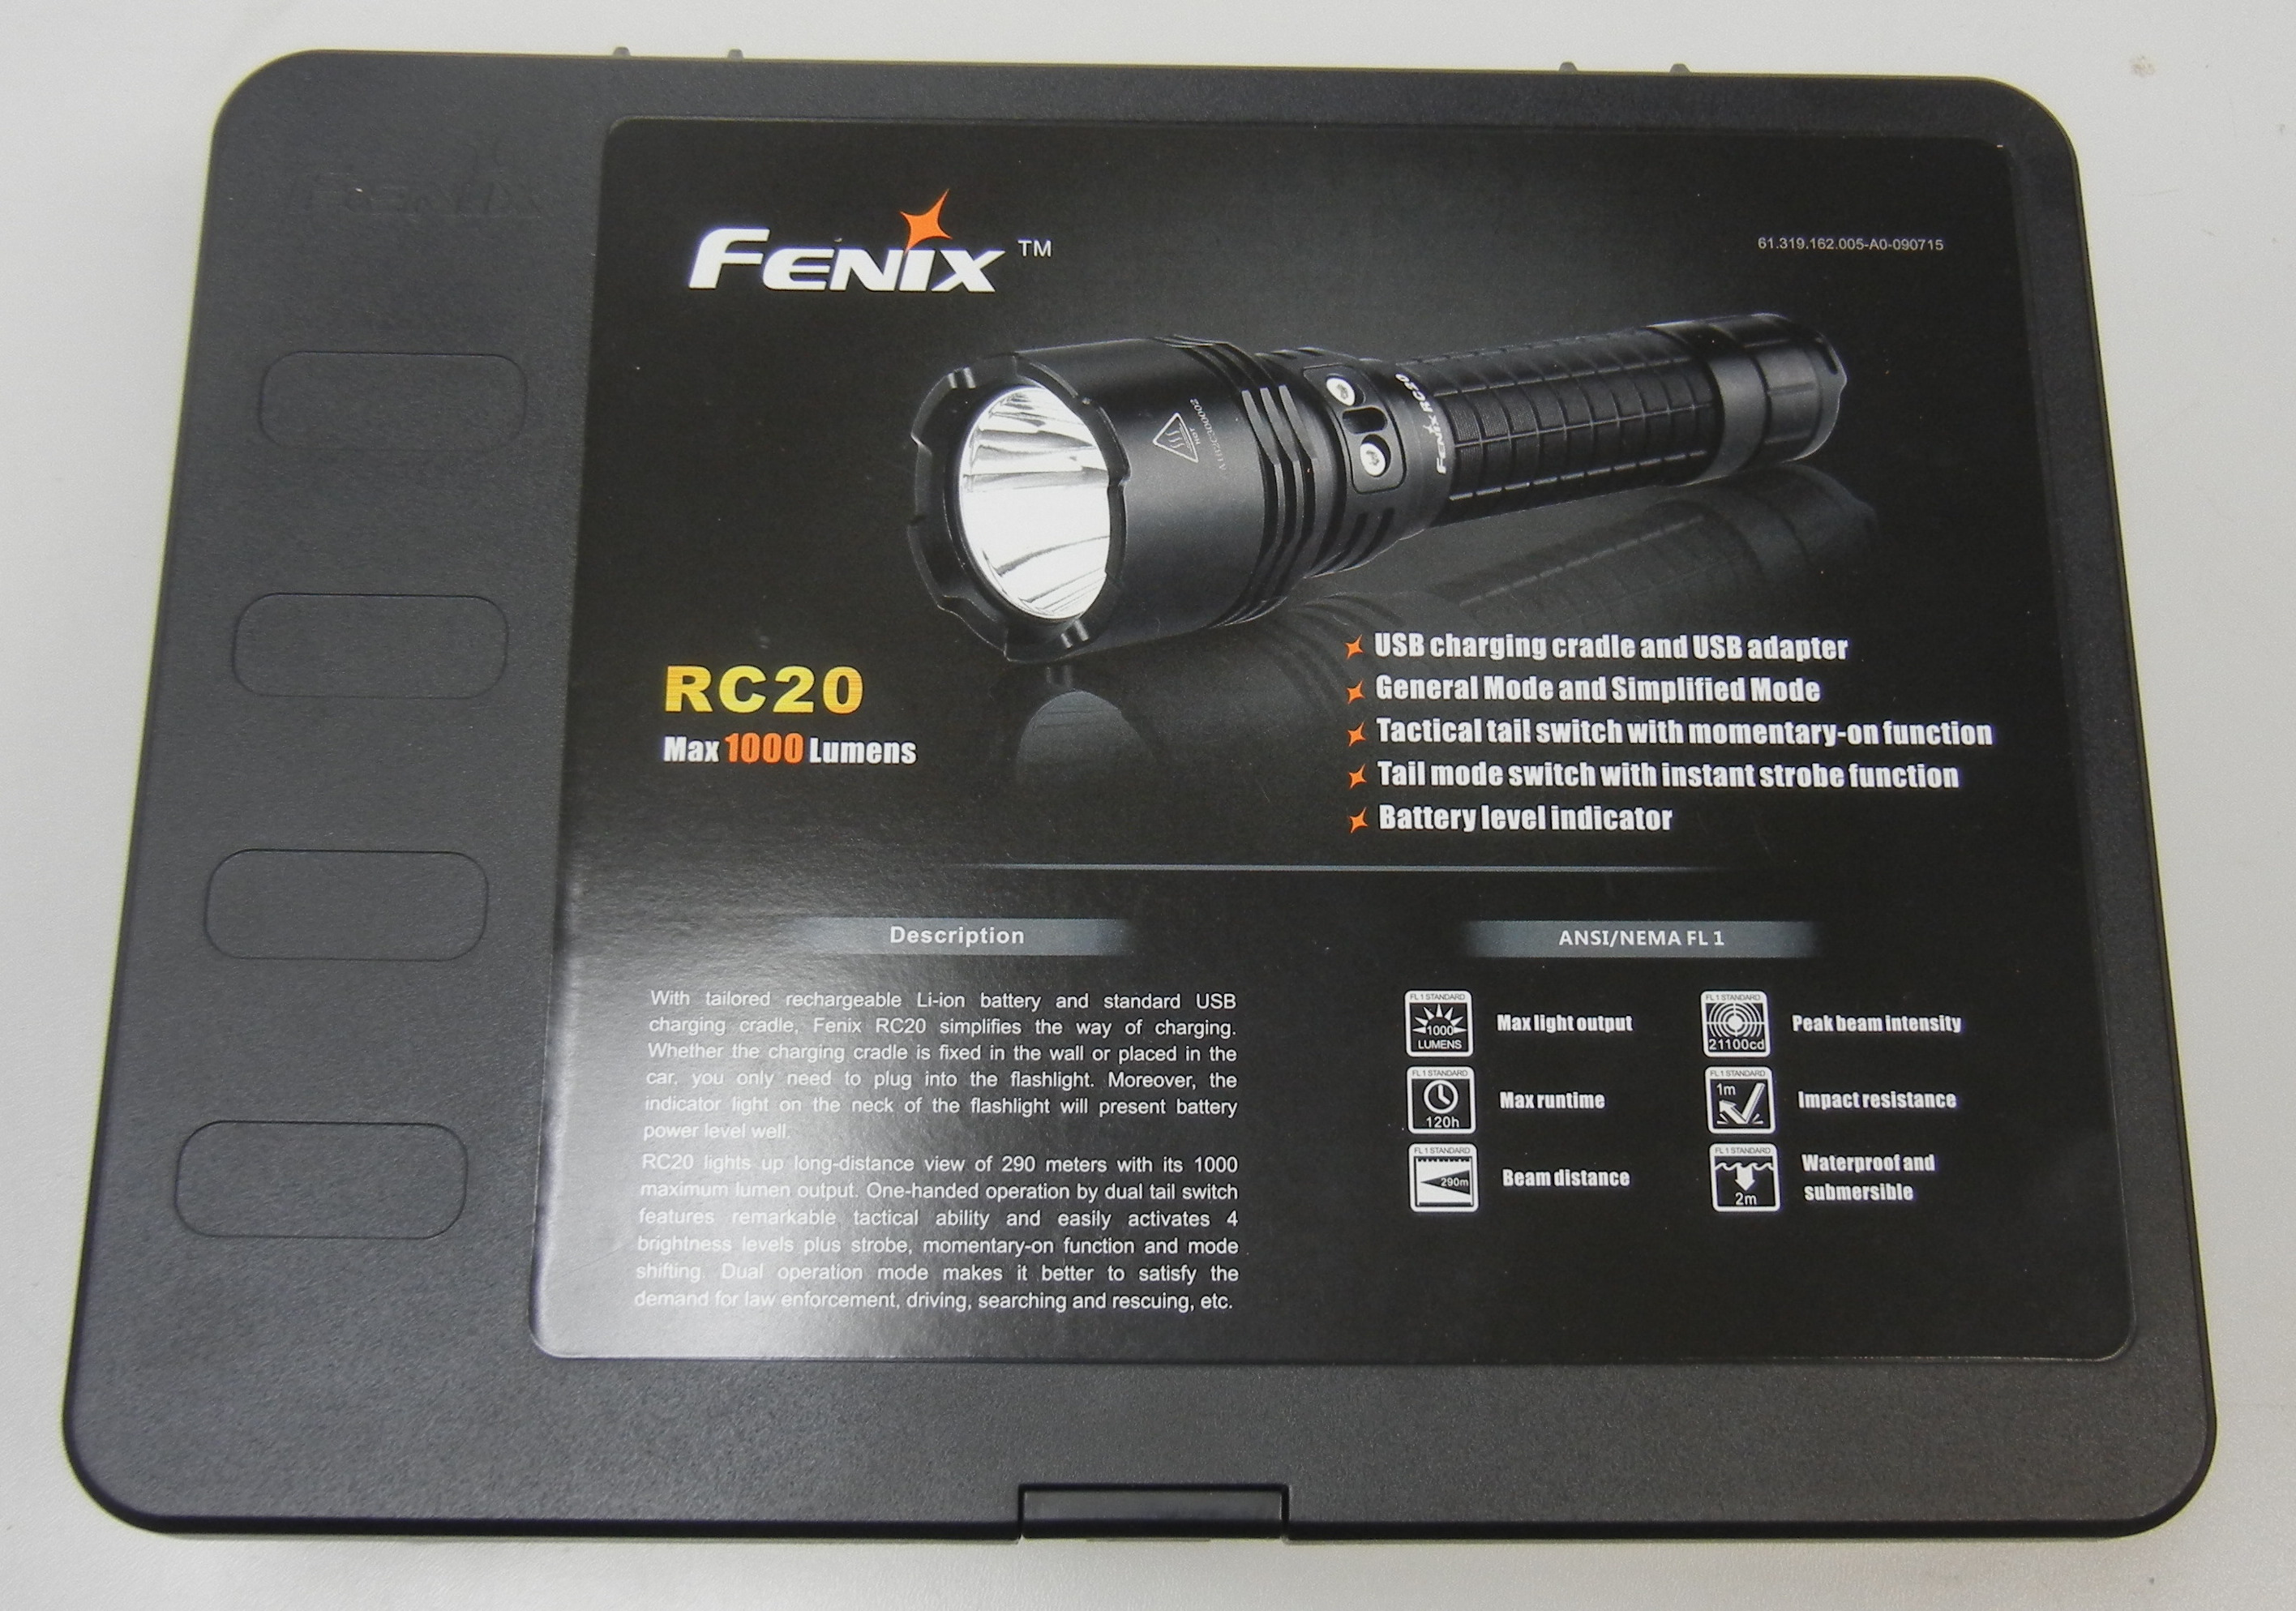 FENIX - RC20 - MAX 1000 LUMENS - LIKE NEW